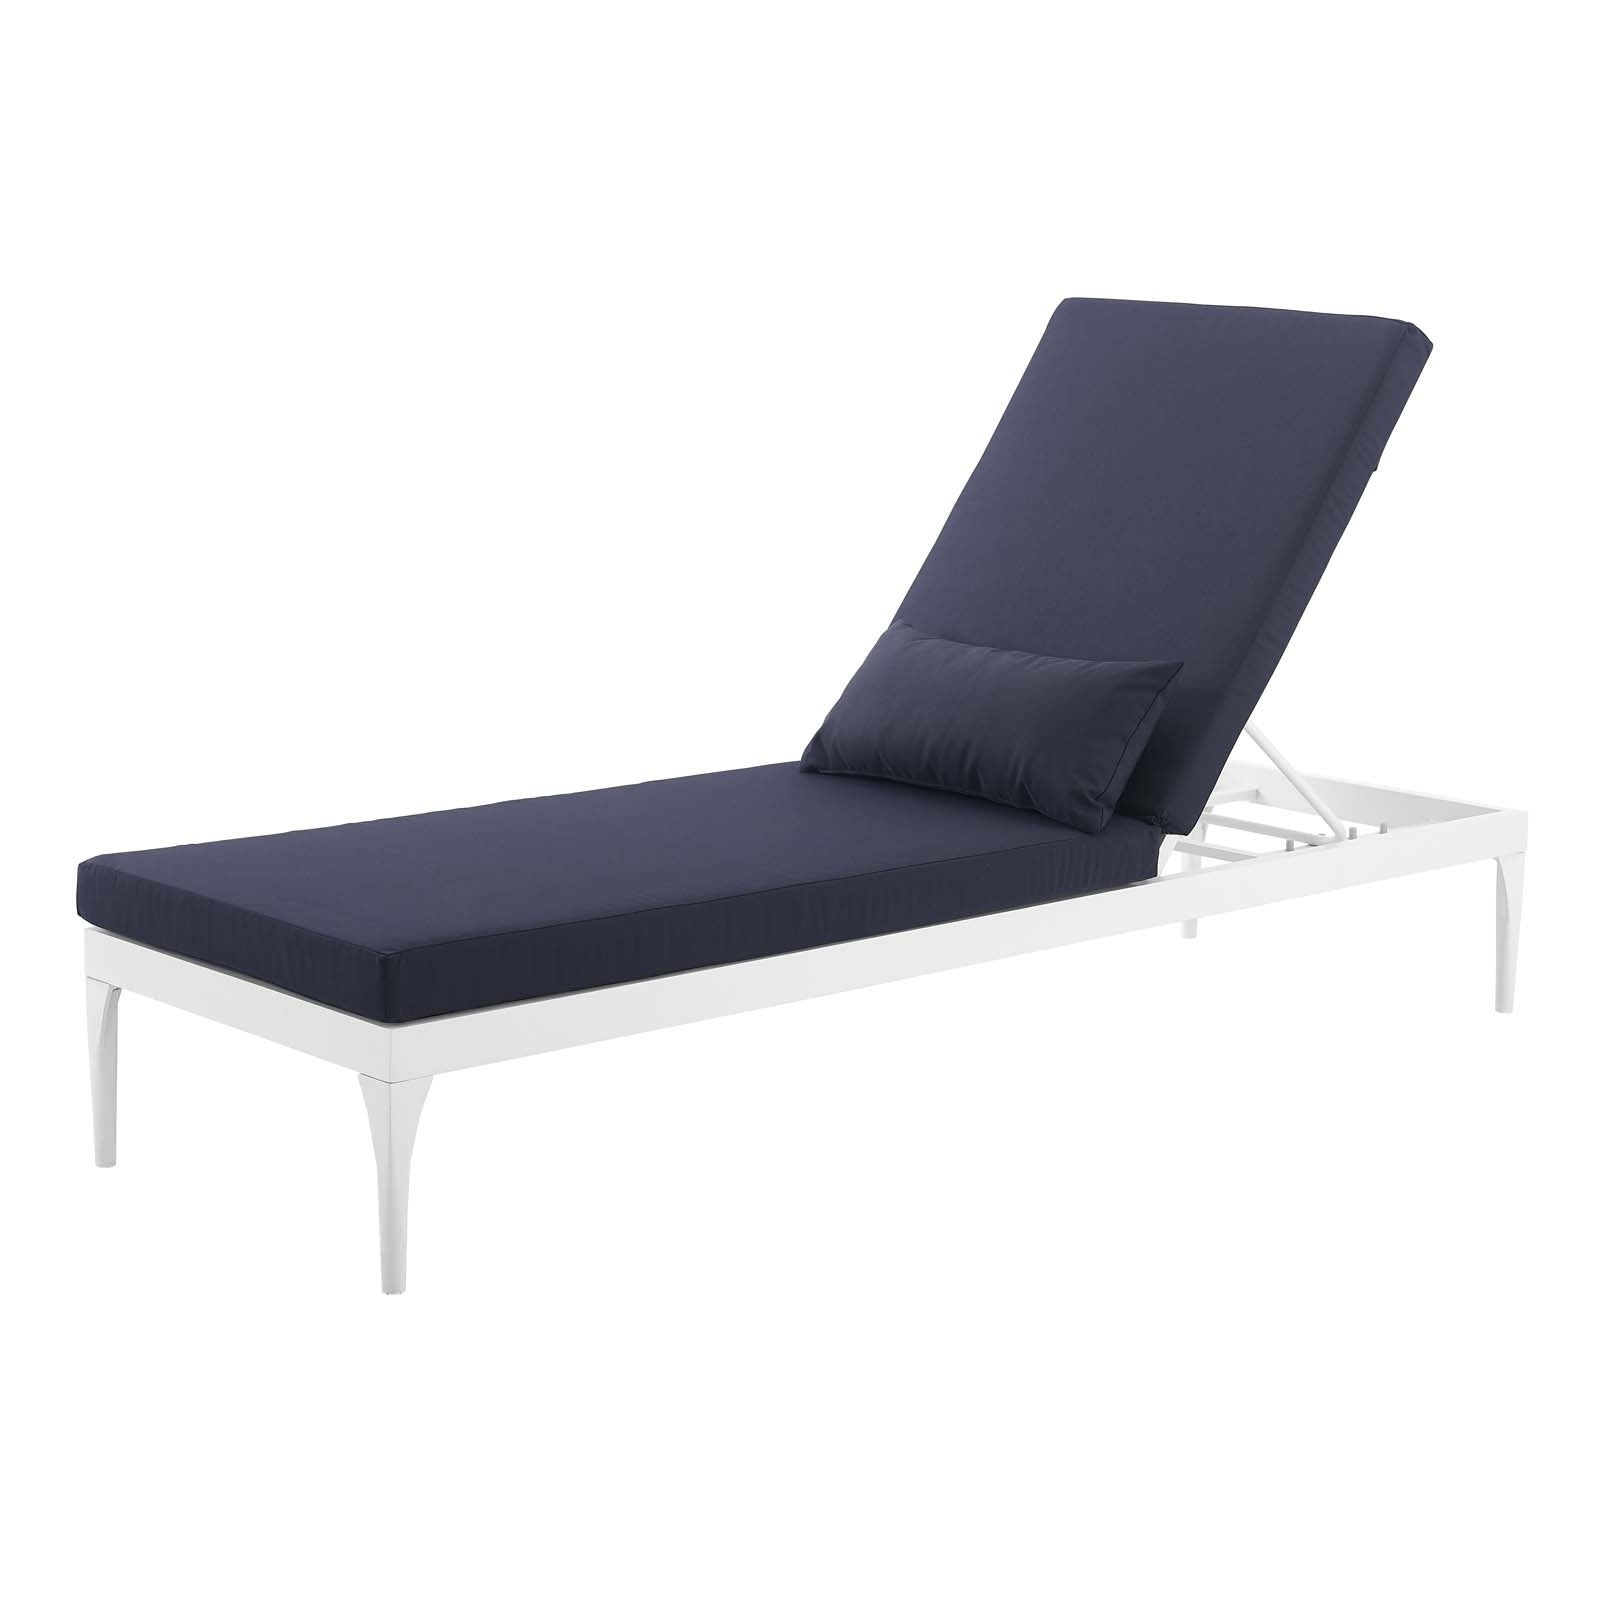 Glimpse Outdoor Patio Mesh Chaise Lounge Chairs Within 2019 Perspective Cushion Outdoor Patio Chaise Lounge Chair (View 8 of 25)